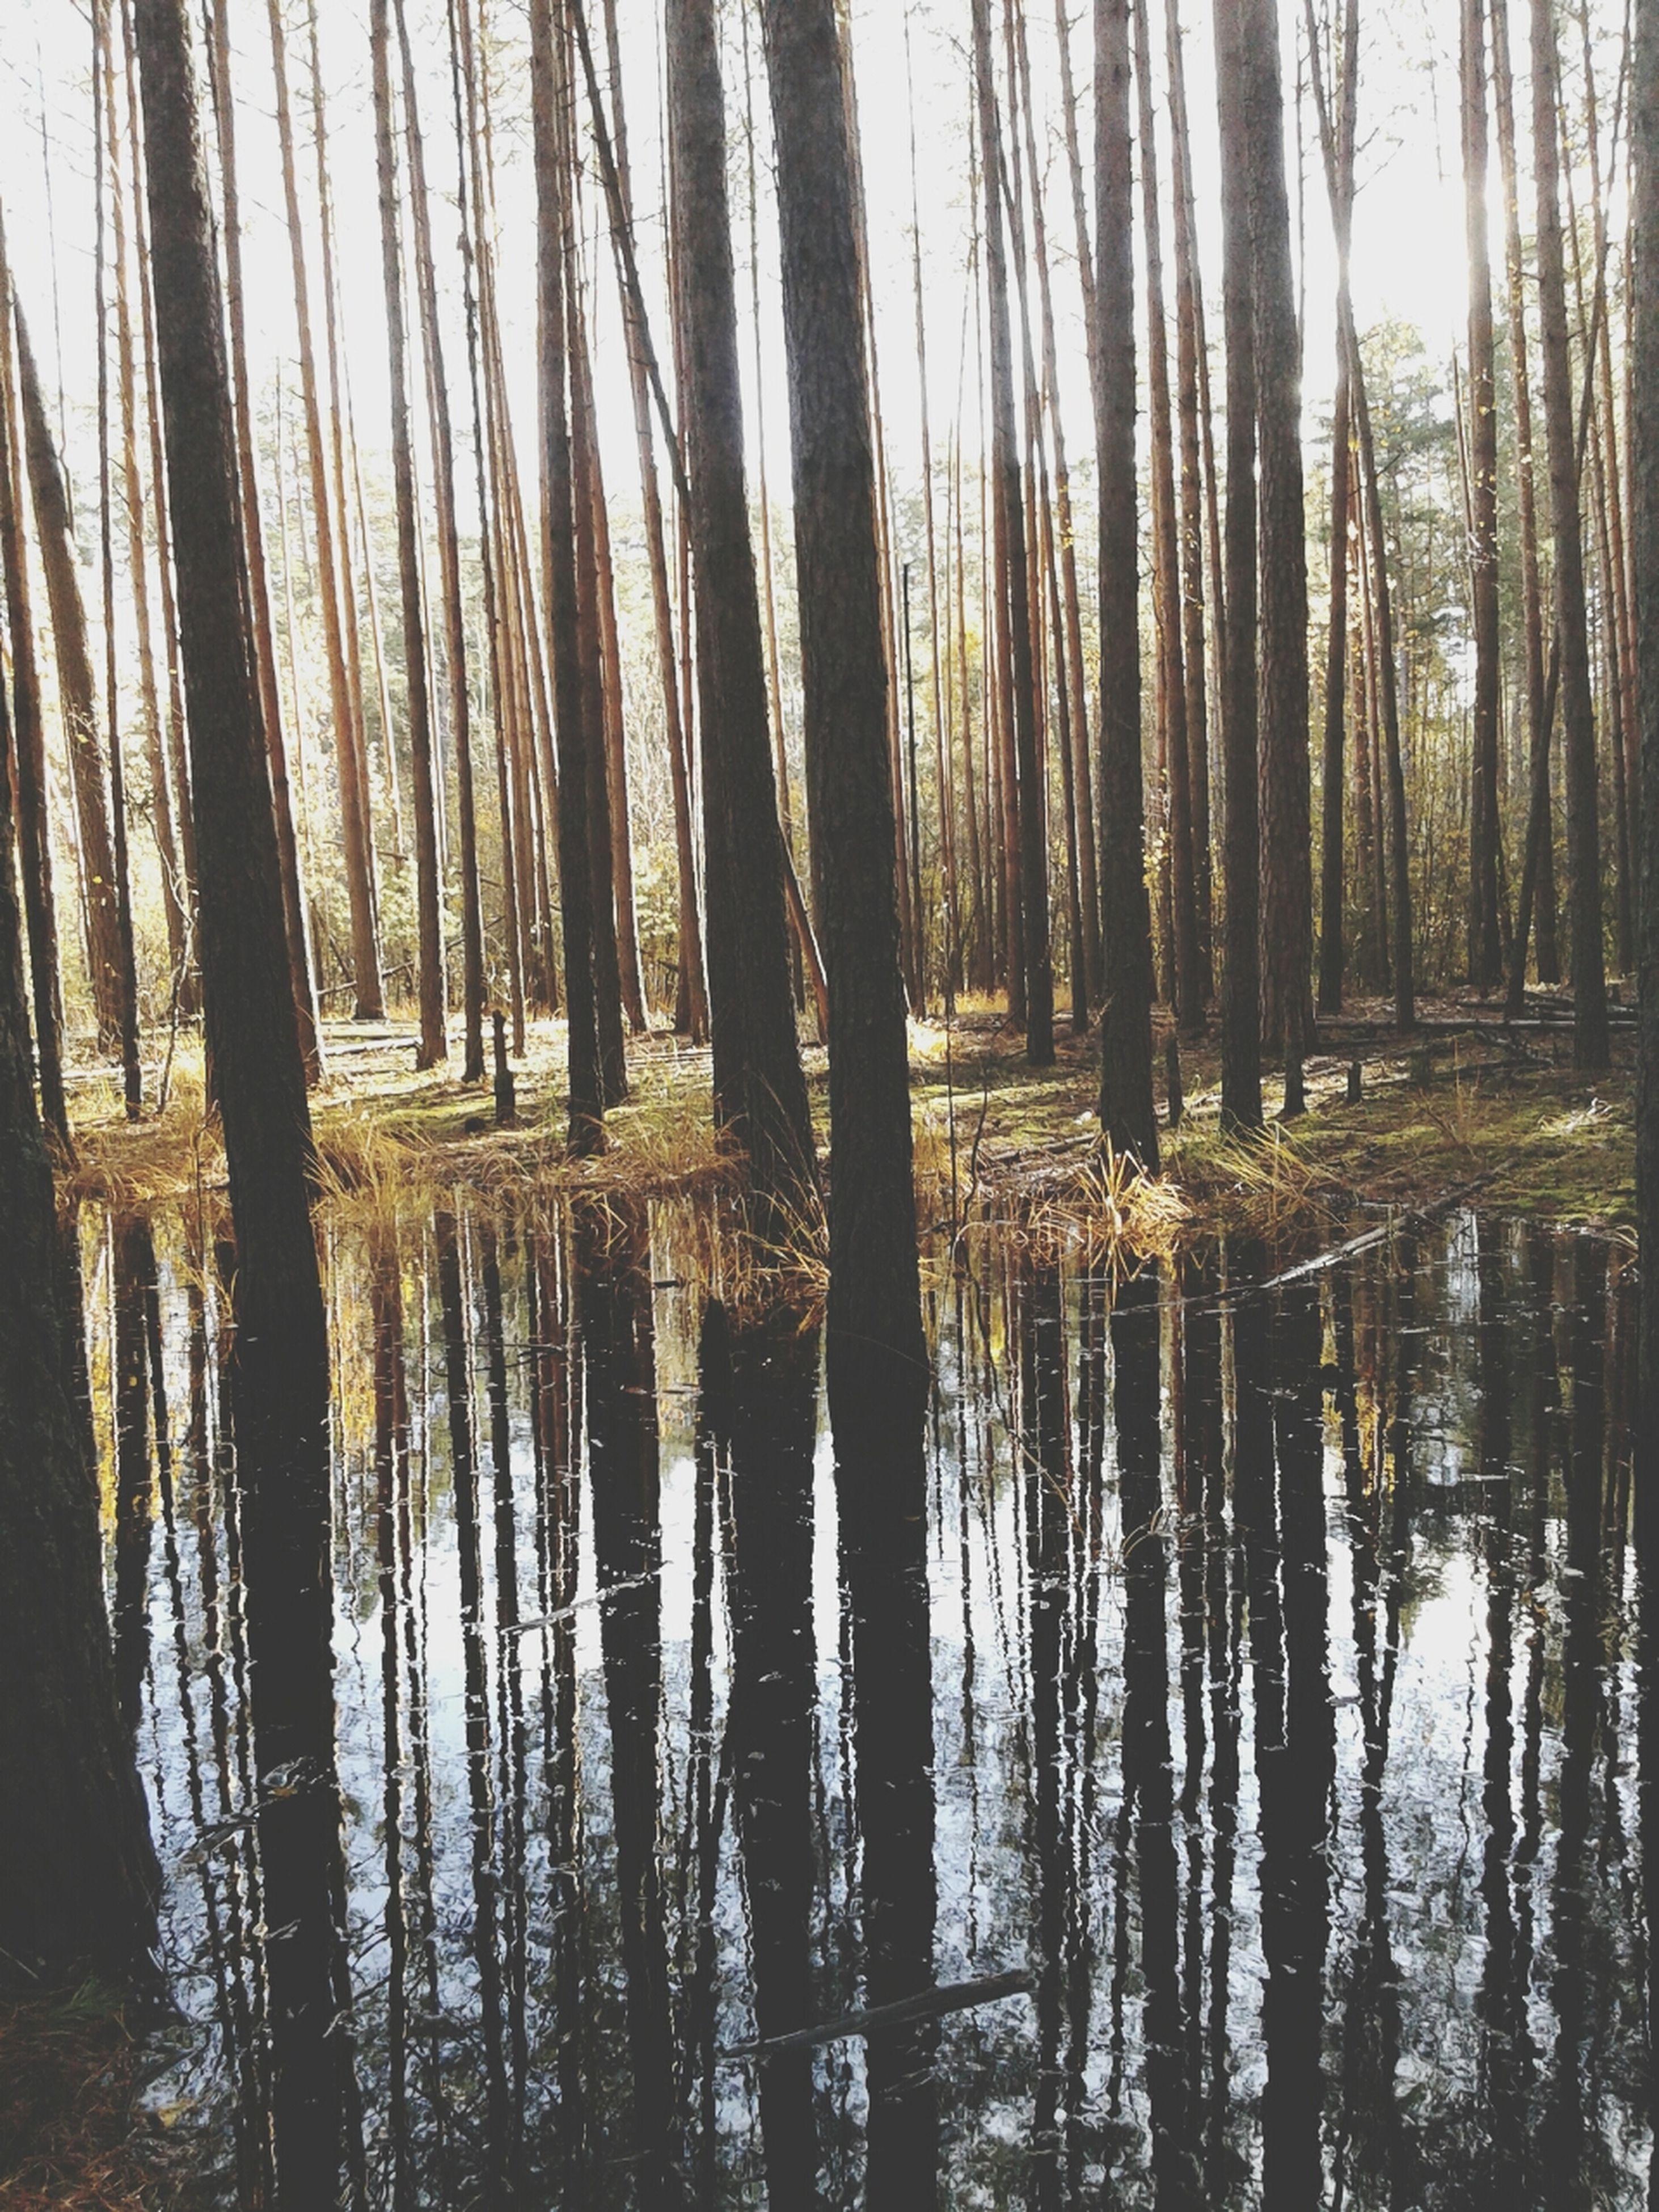 water, tree, tranquility, reflection, tranquil scene, lake, tree trunk, forest, nature, scenics, beauty in nature, waterfront, woodland, growth, idyllic, non-urban scene, day, no people, outdoors, standing water